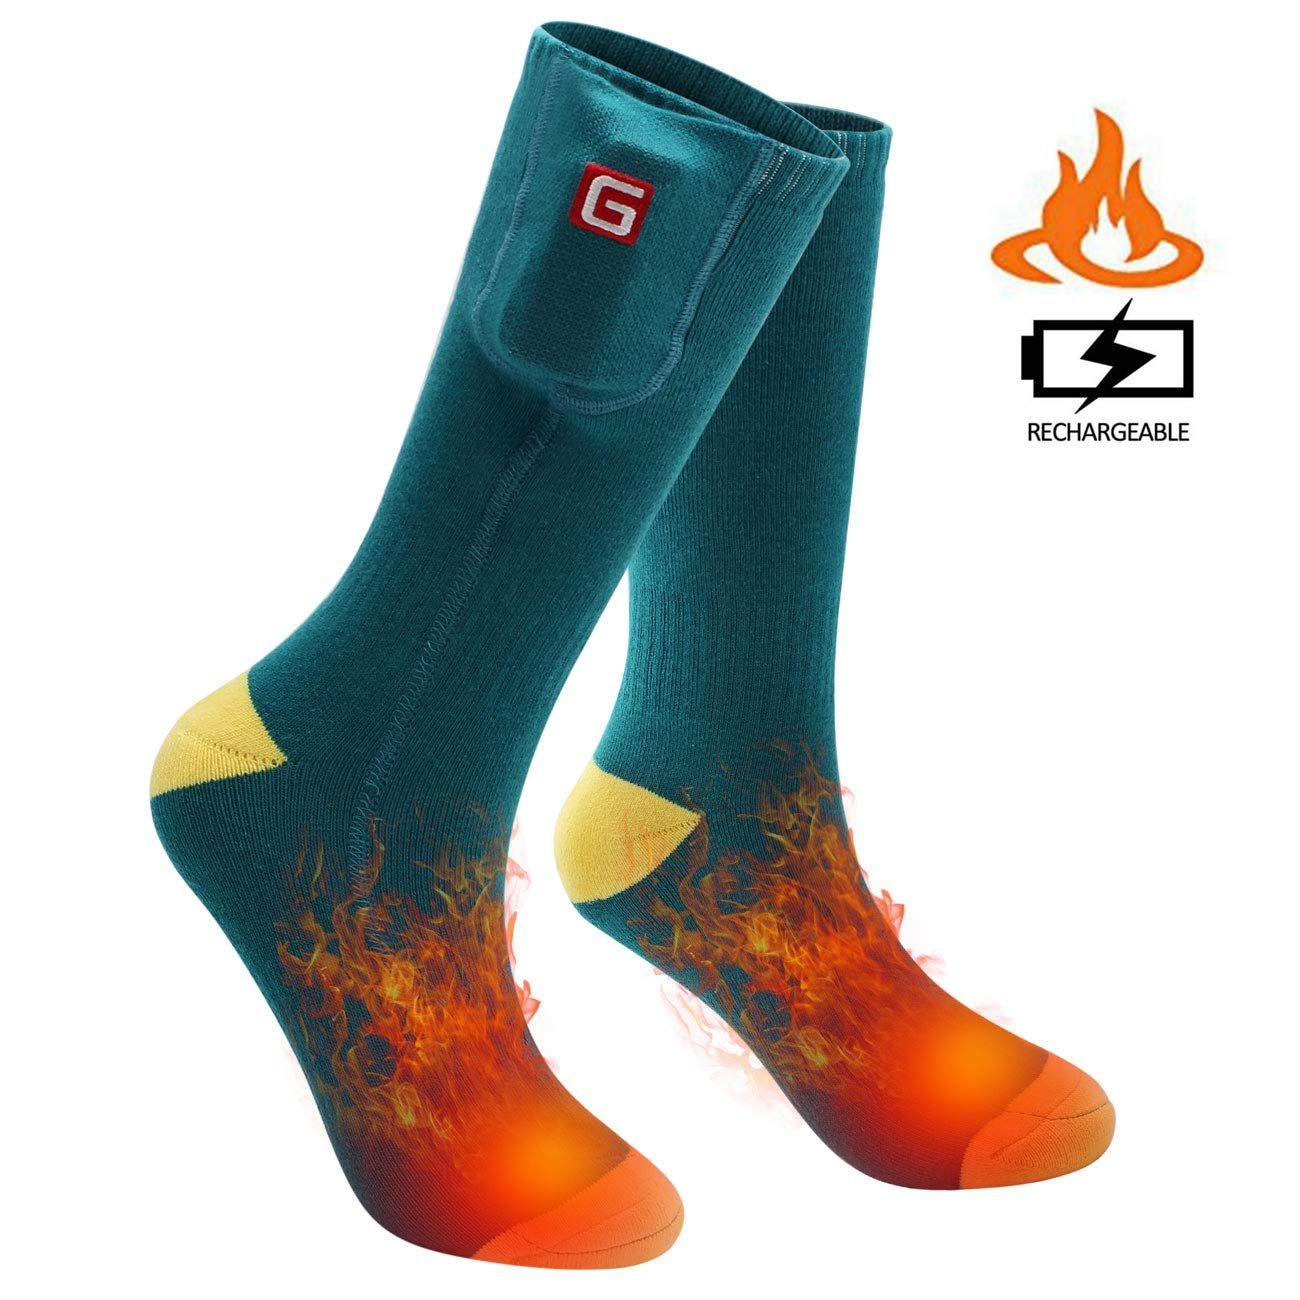 SVPRO Electric Rechargeable Battery Heated Socks Men Women Cold Weather Heated Socks Sport Outdoor Indoor Camping Hiking Hunting Thermal Heating Foot Warmer by SVPRO